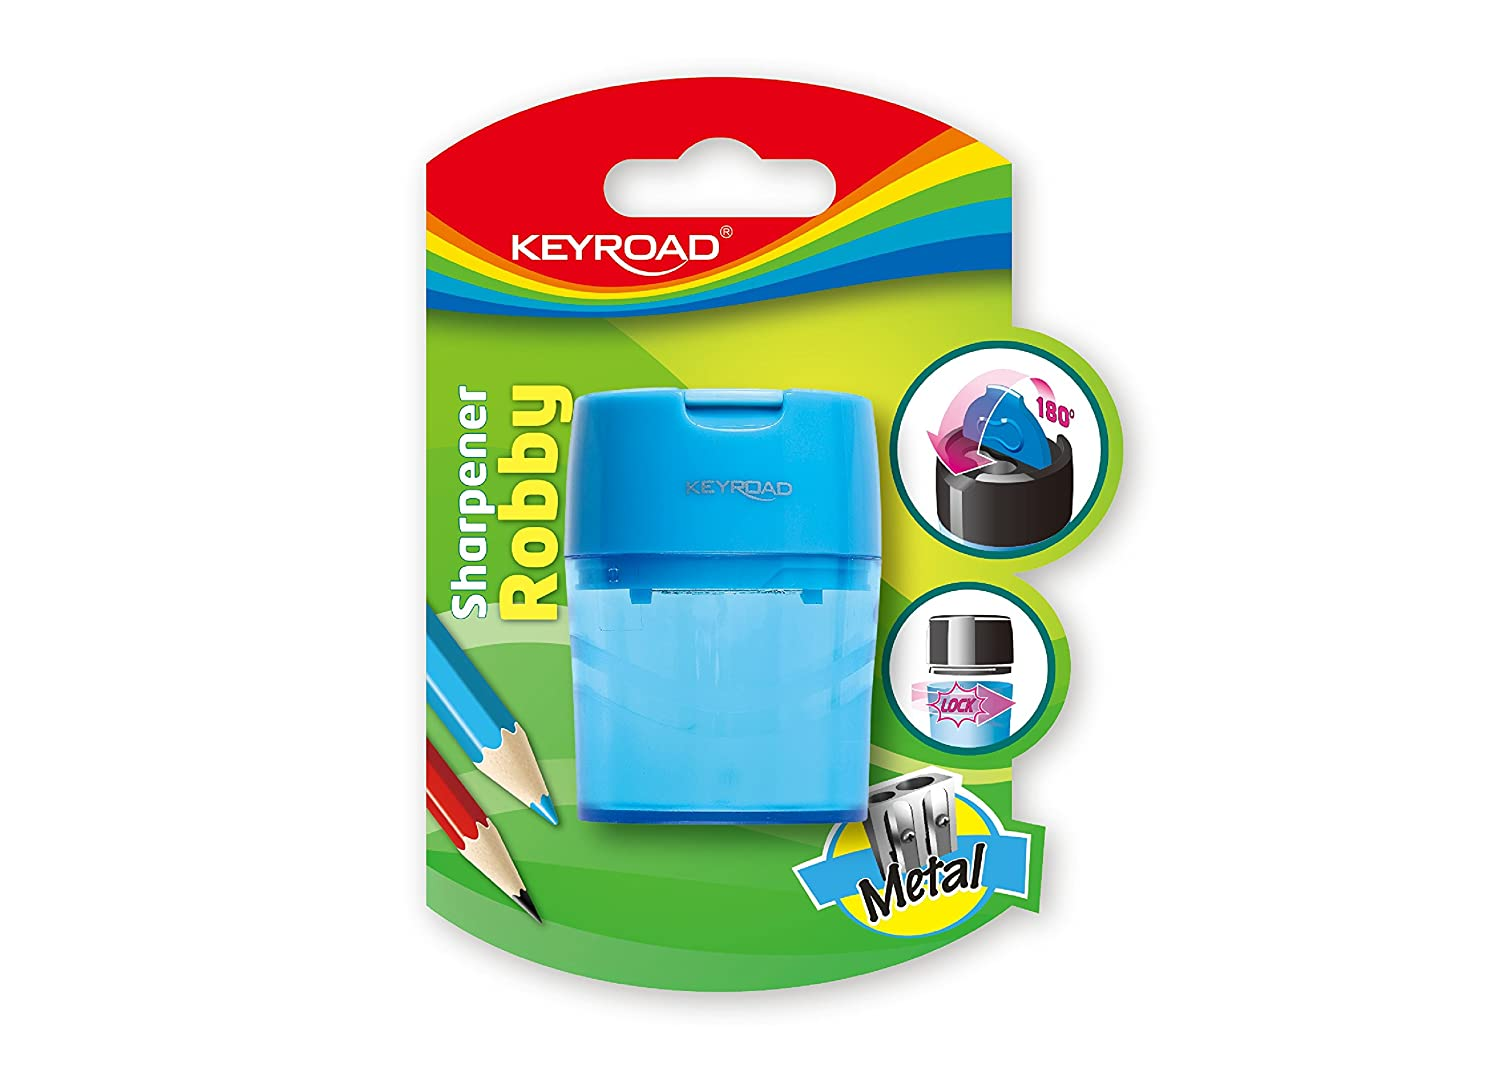 Keyroad kr971264/ /Sharpener with Container